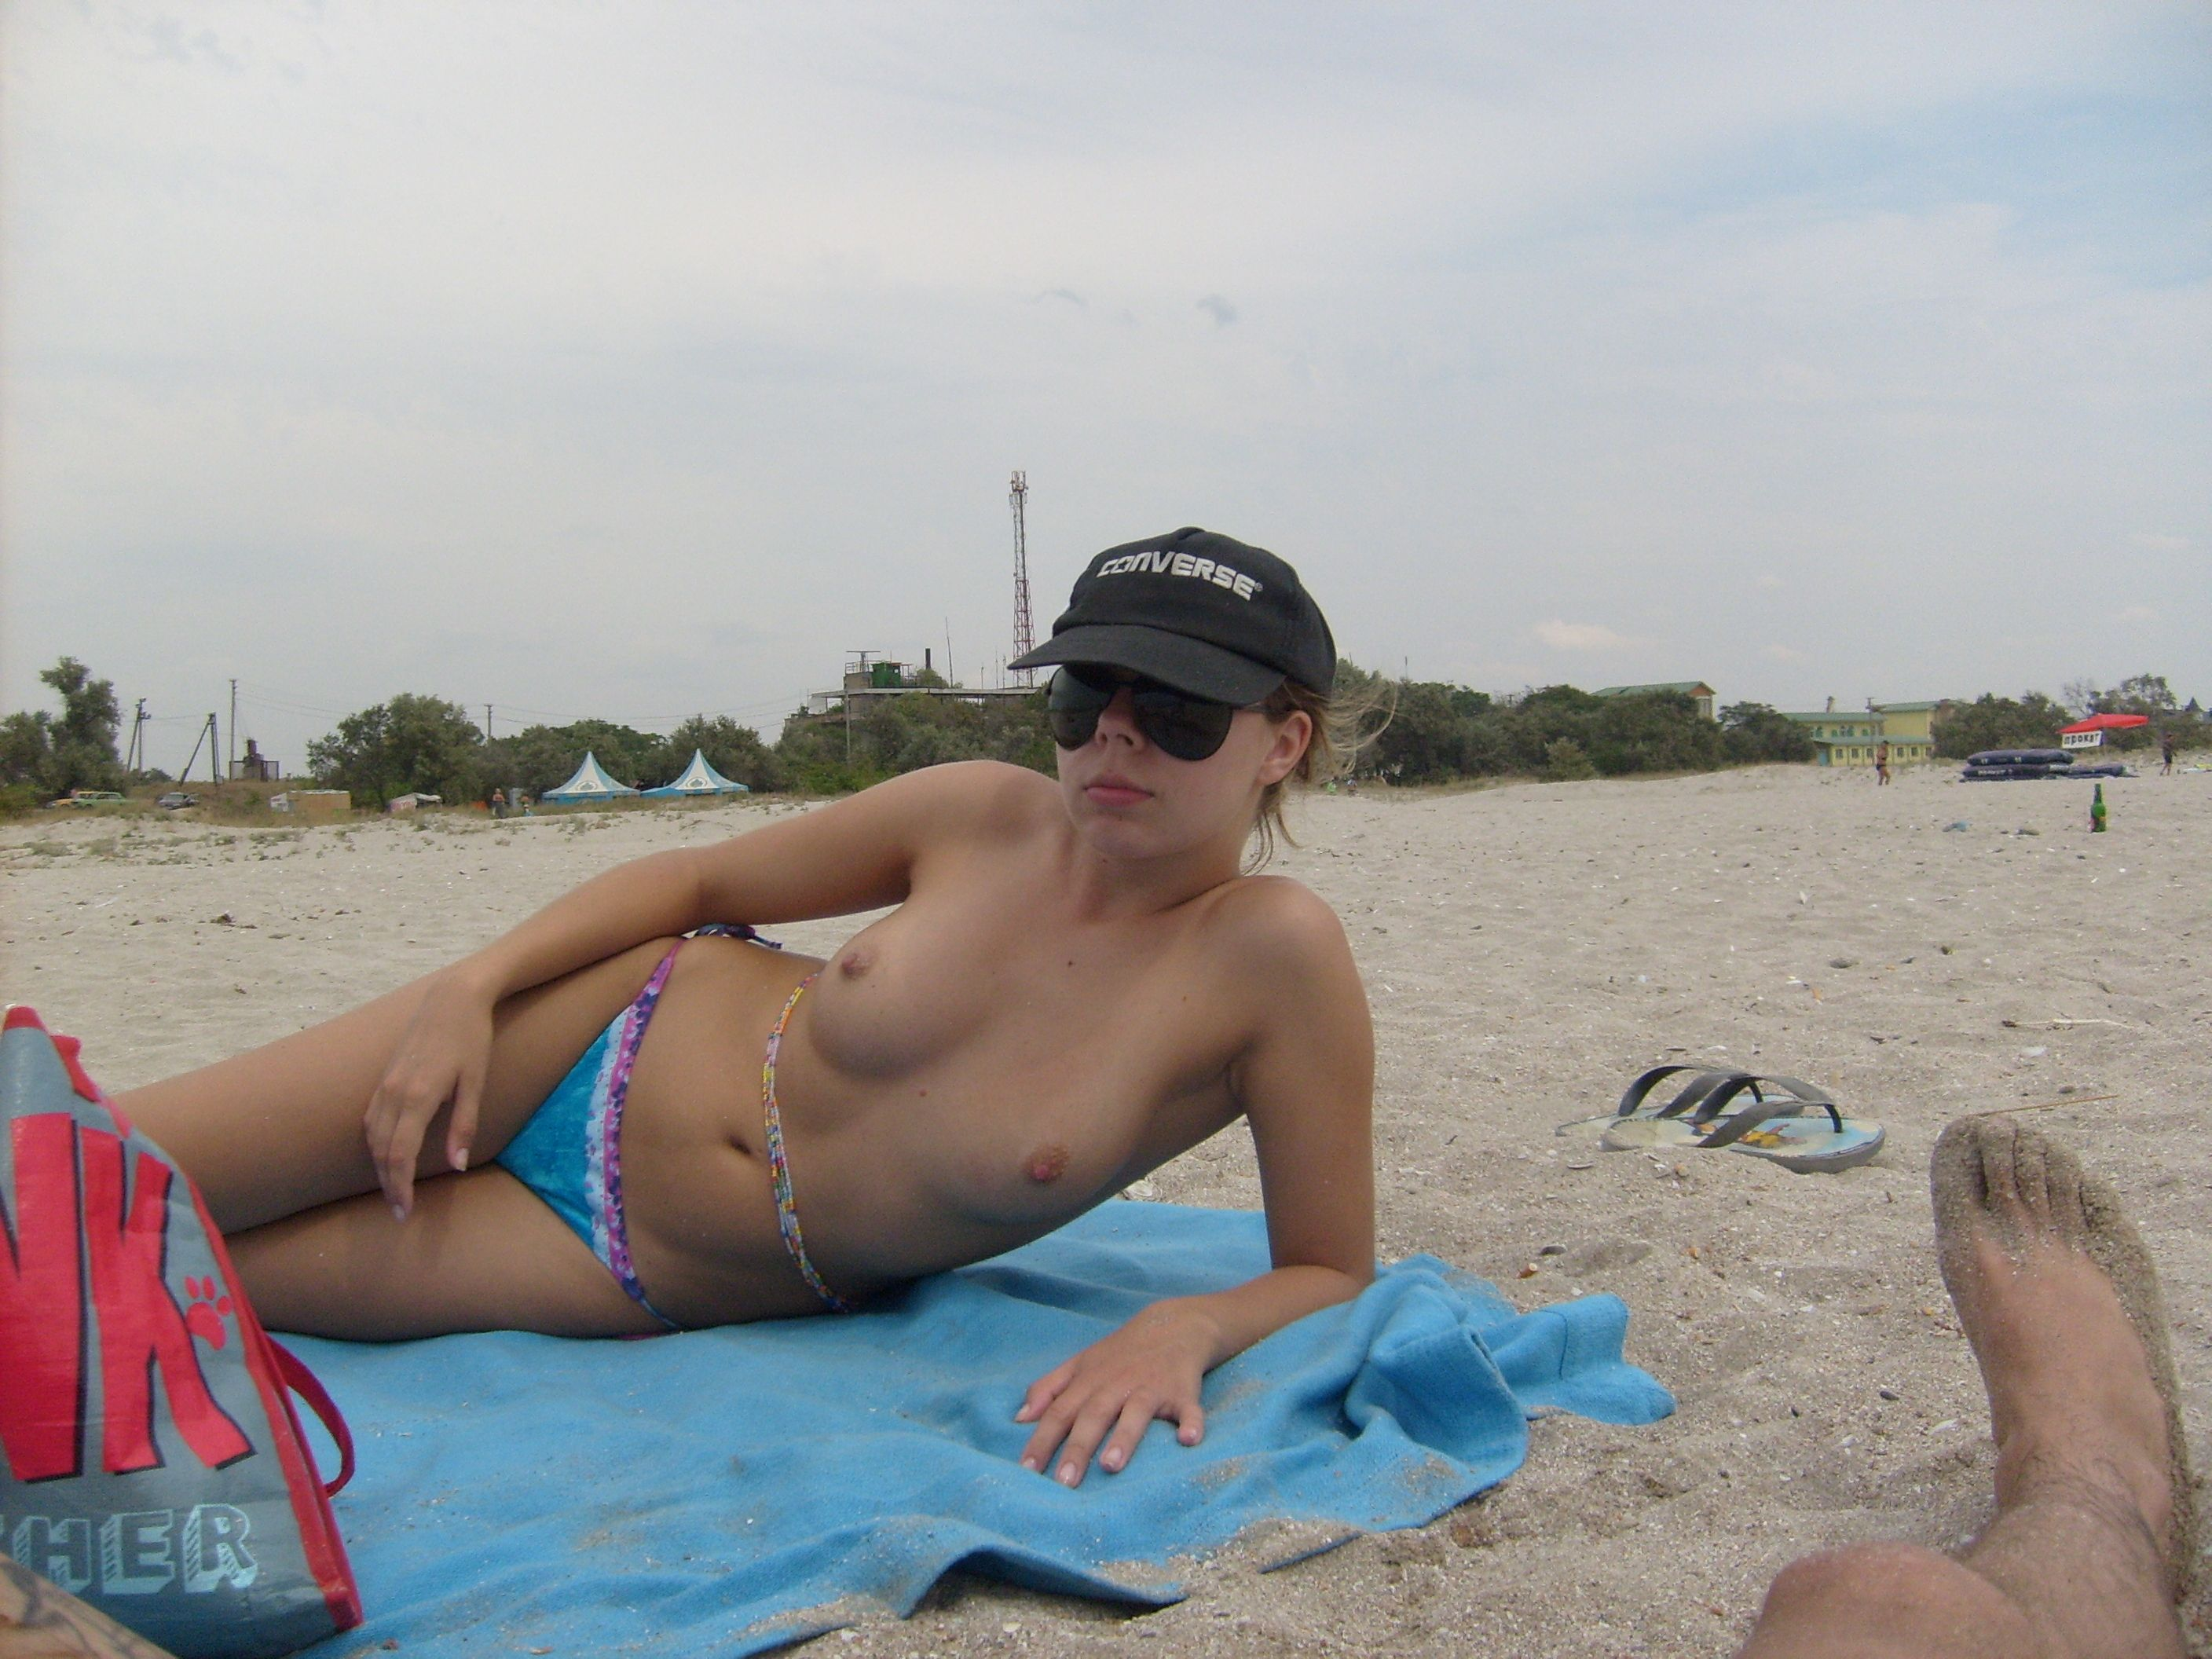 Fancy girlie sits topless for a hot tan